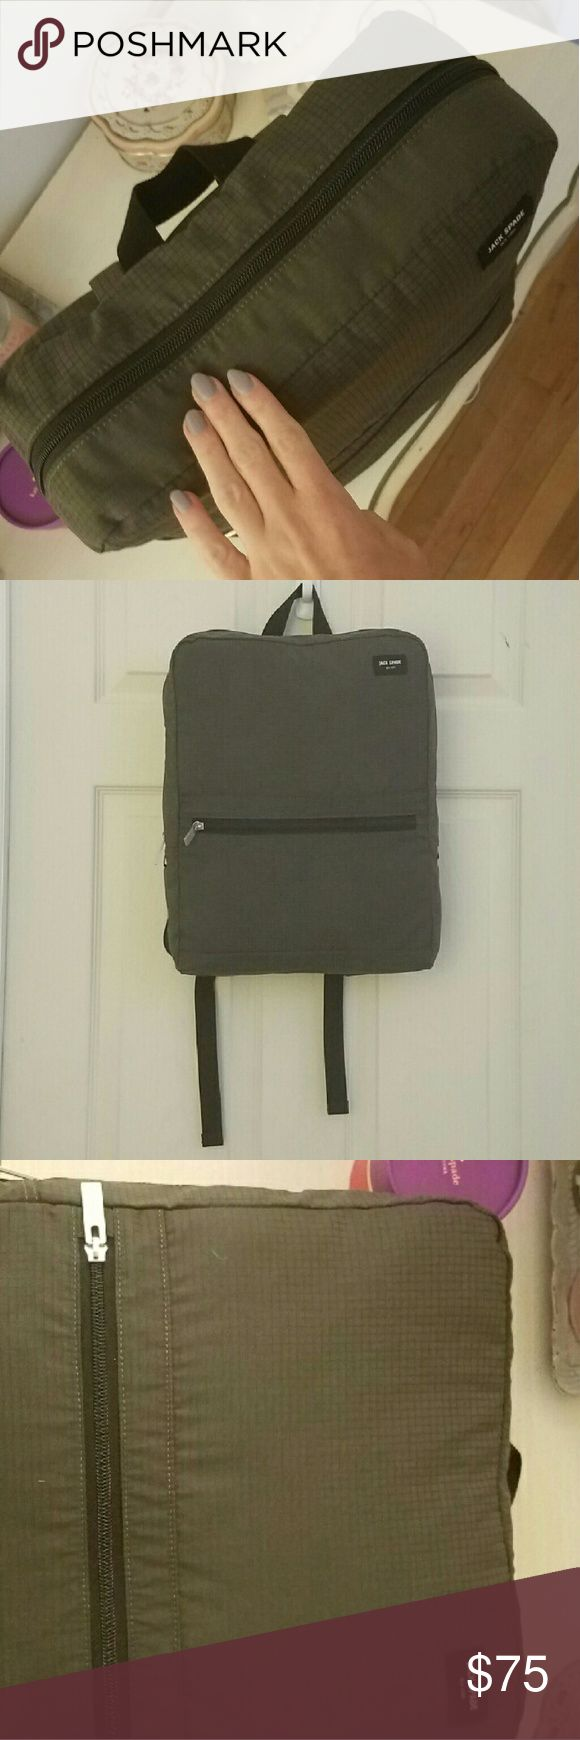 Jack Spade grid nylon backpack Army green backpack, new without tags Jack Spade Bags Backpacks